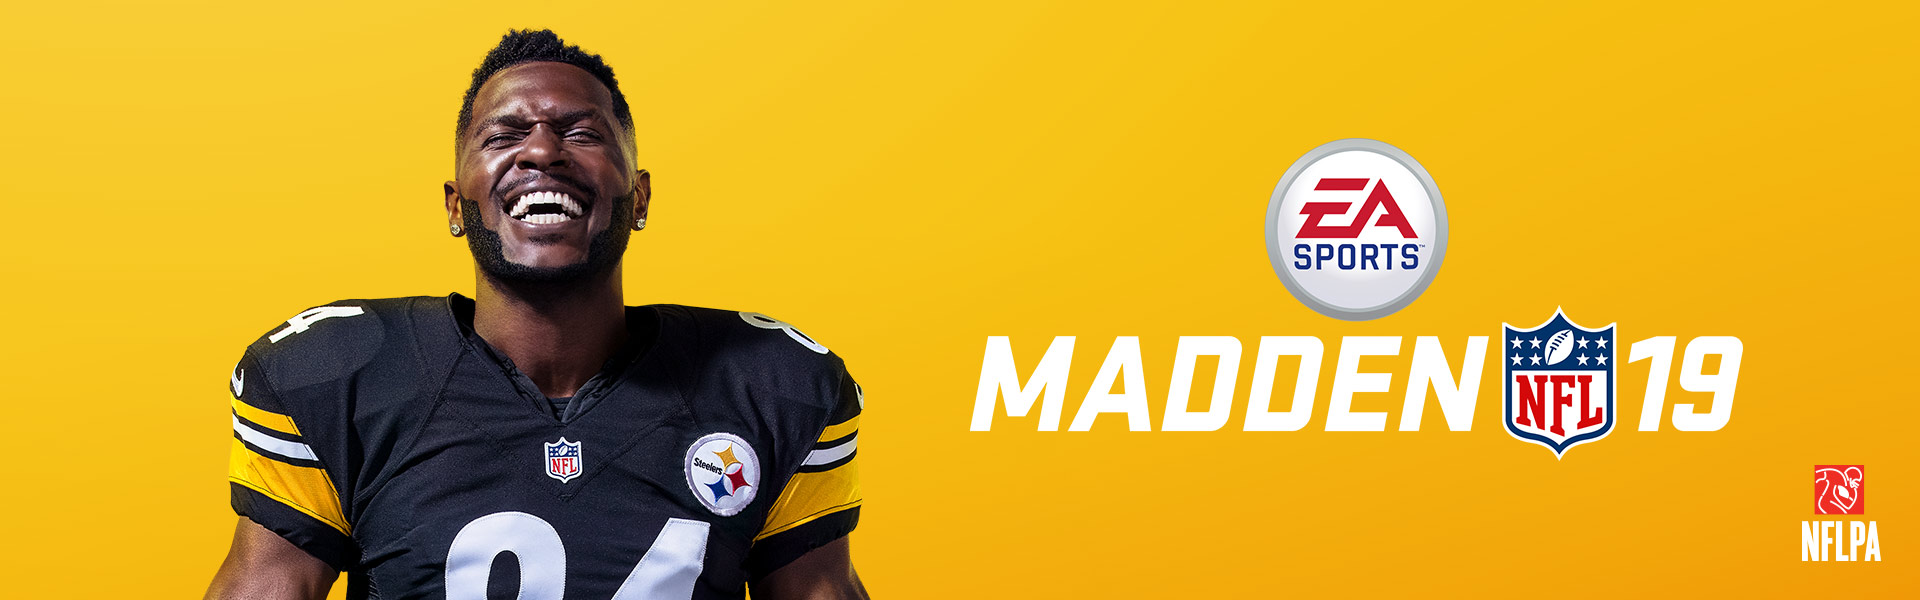 EA Sports Madden NFL 19, Antonio Brown sorri